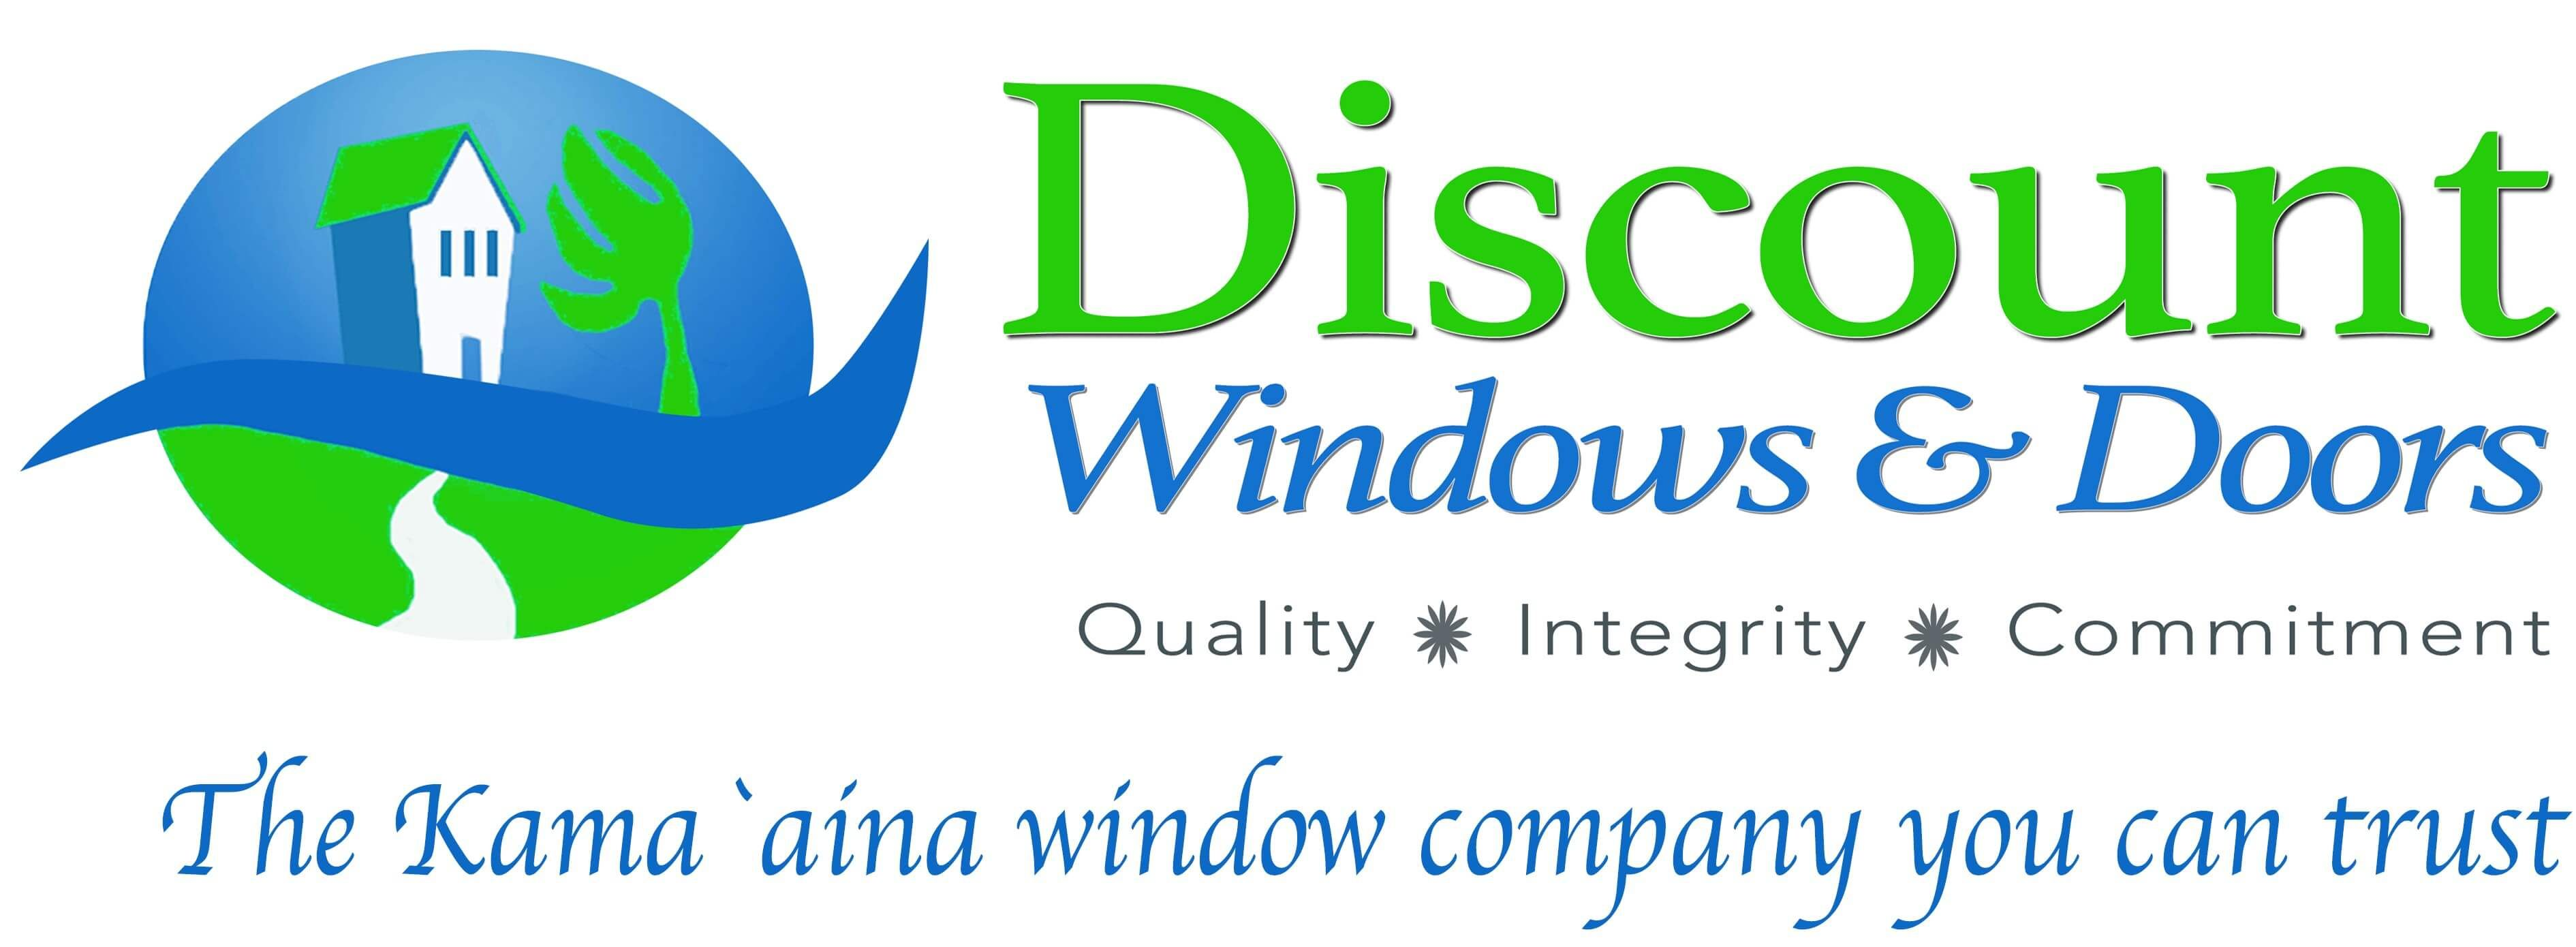 Jalousien Discount.Custom Vinyl Louver Jalousie Windows Discount Windows